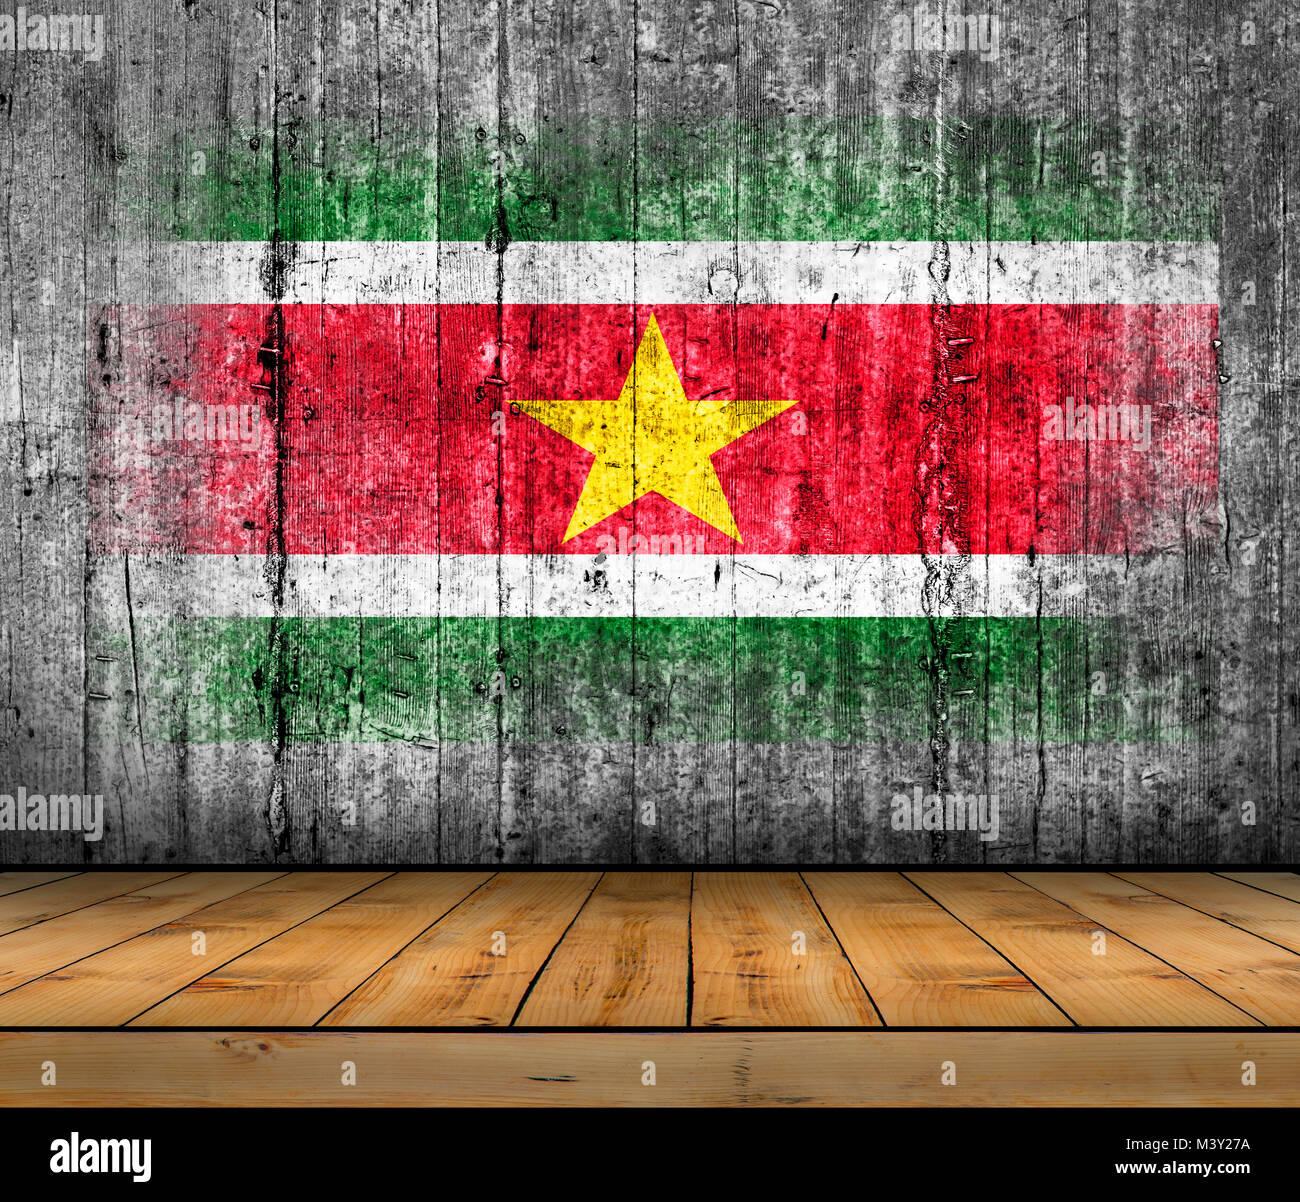 Suriname  flag painted on concrete with wooden floor - Stock Image